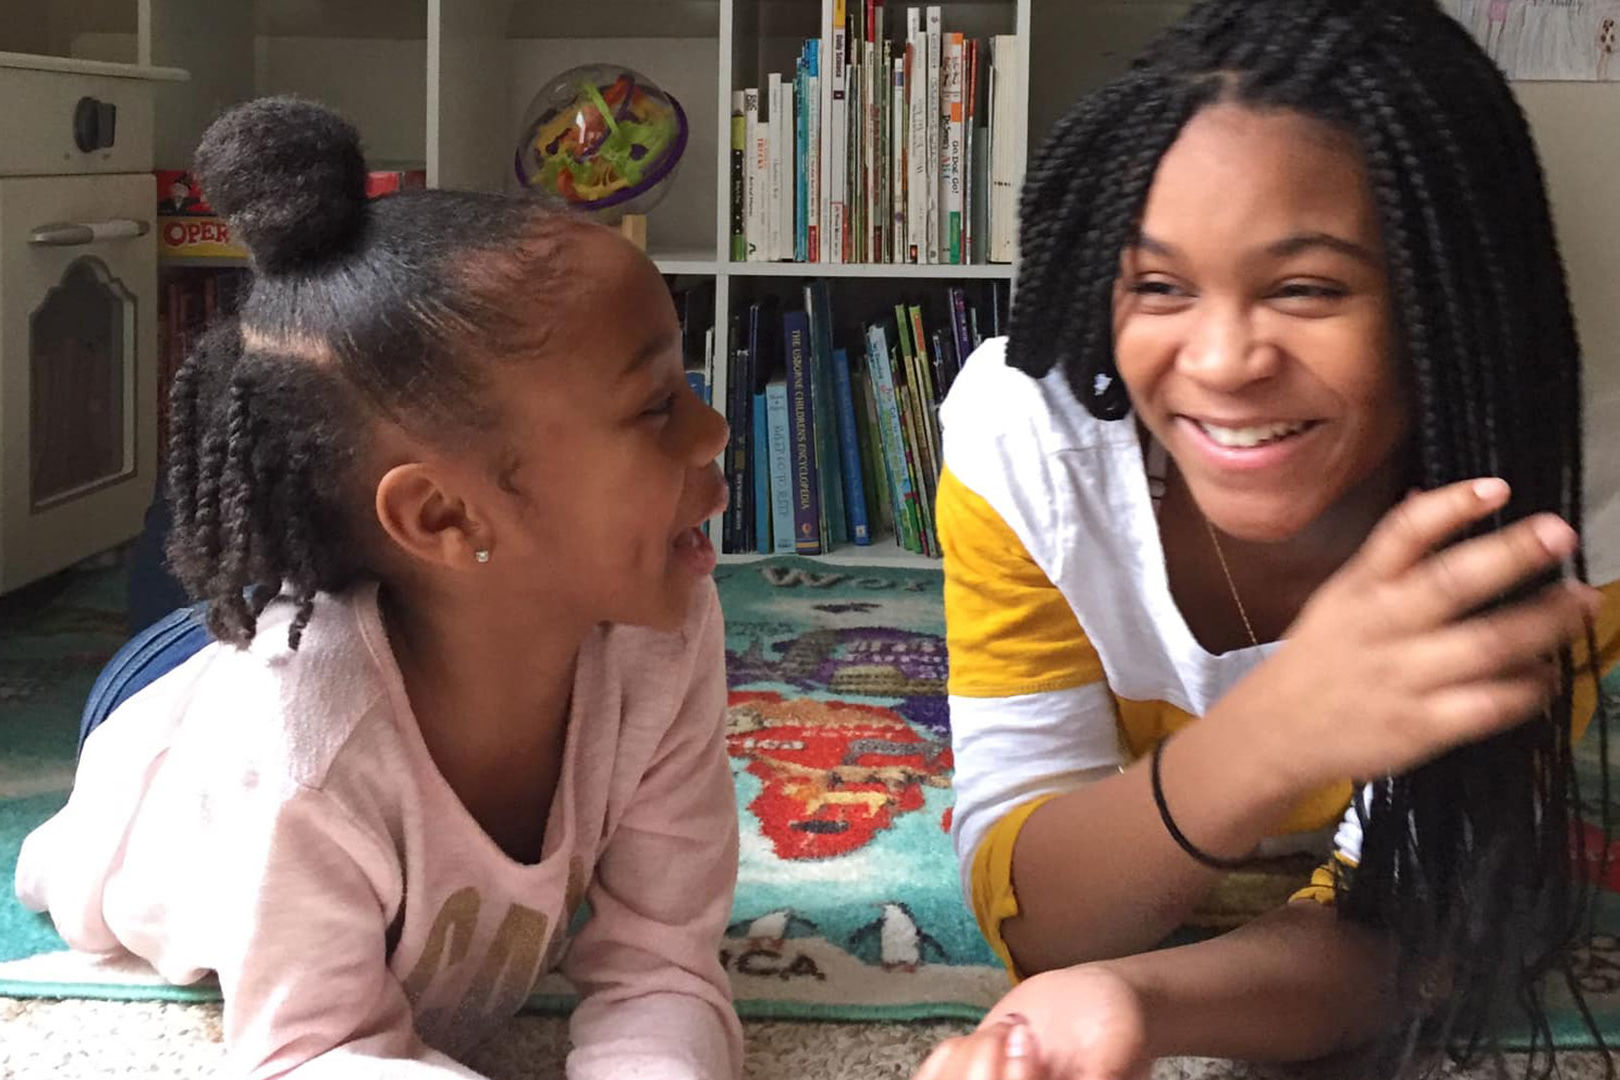 Sisters Read Bedtime Stories to Kids All over the World via Facebook